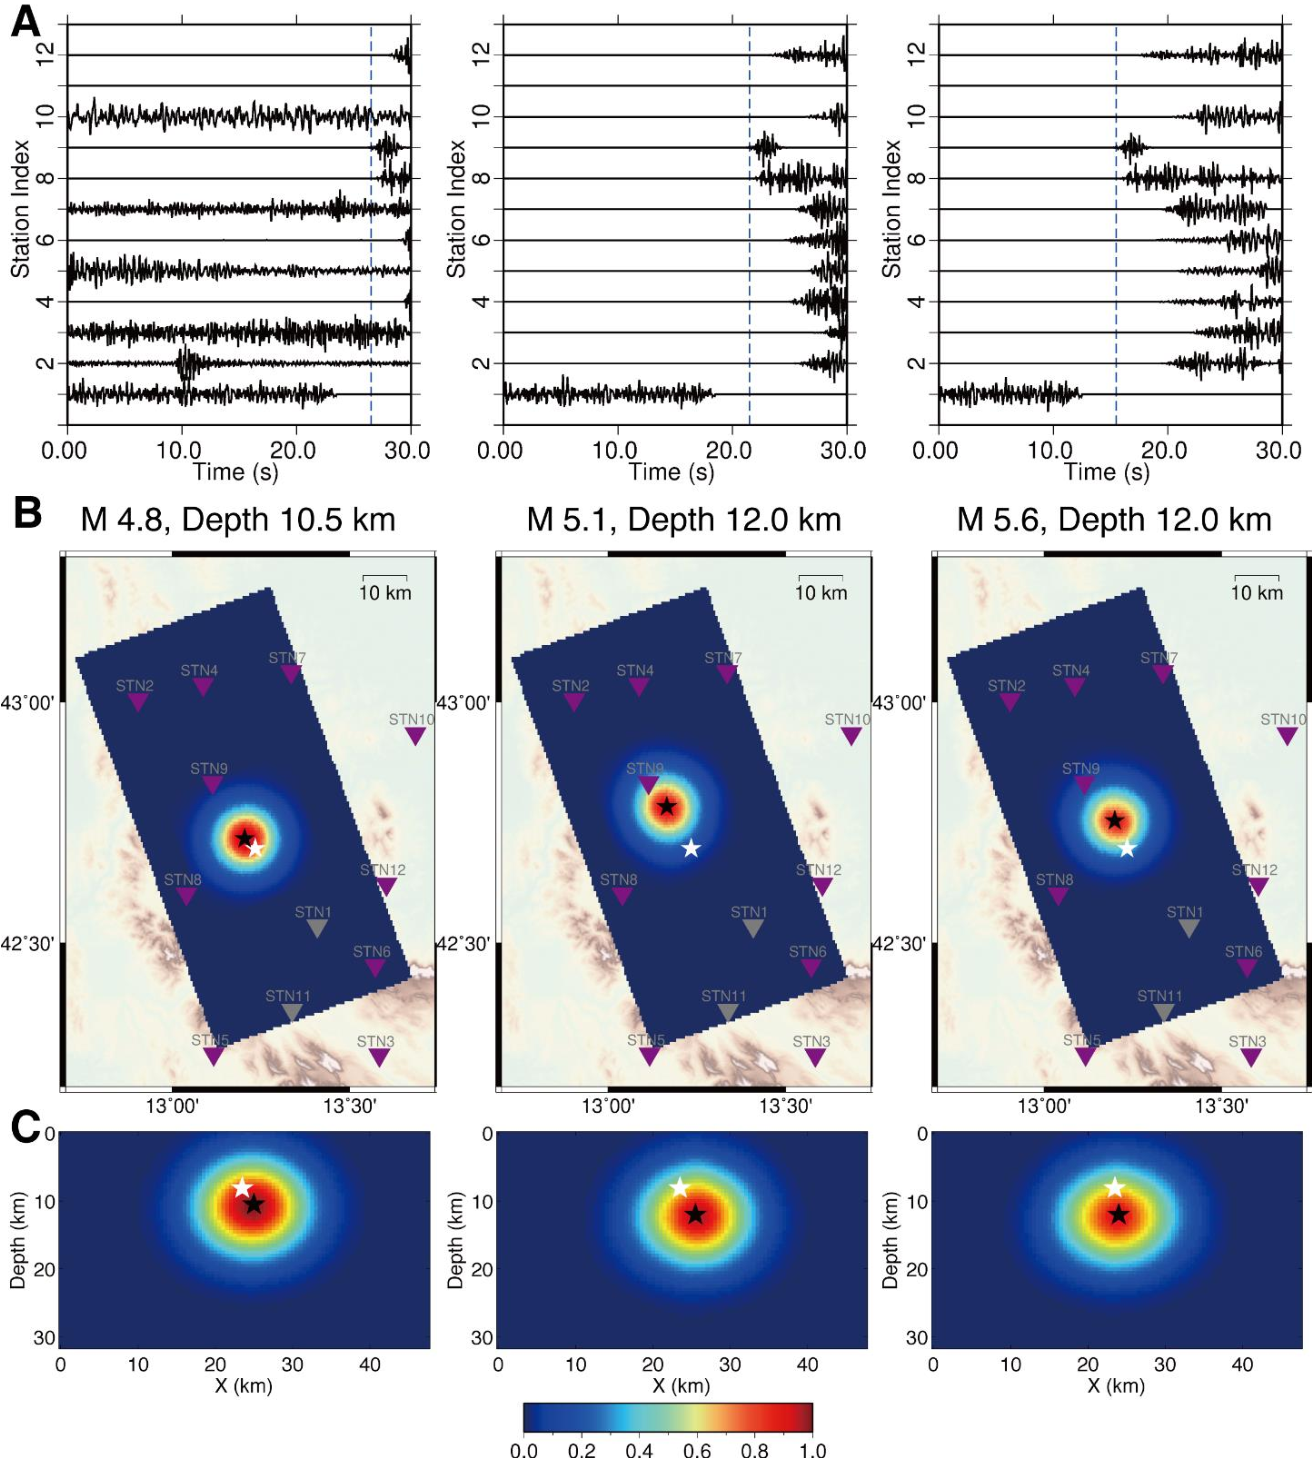 Figure 3 for Real-time Earthquake Early Warning with Deep Learning: Application to the 2016 Central Apennines, Italy Earthquake Sequence